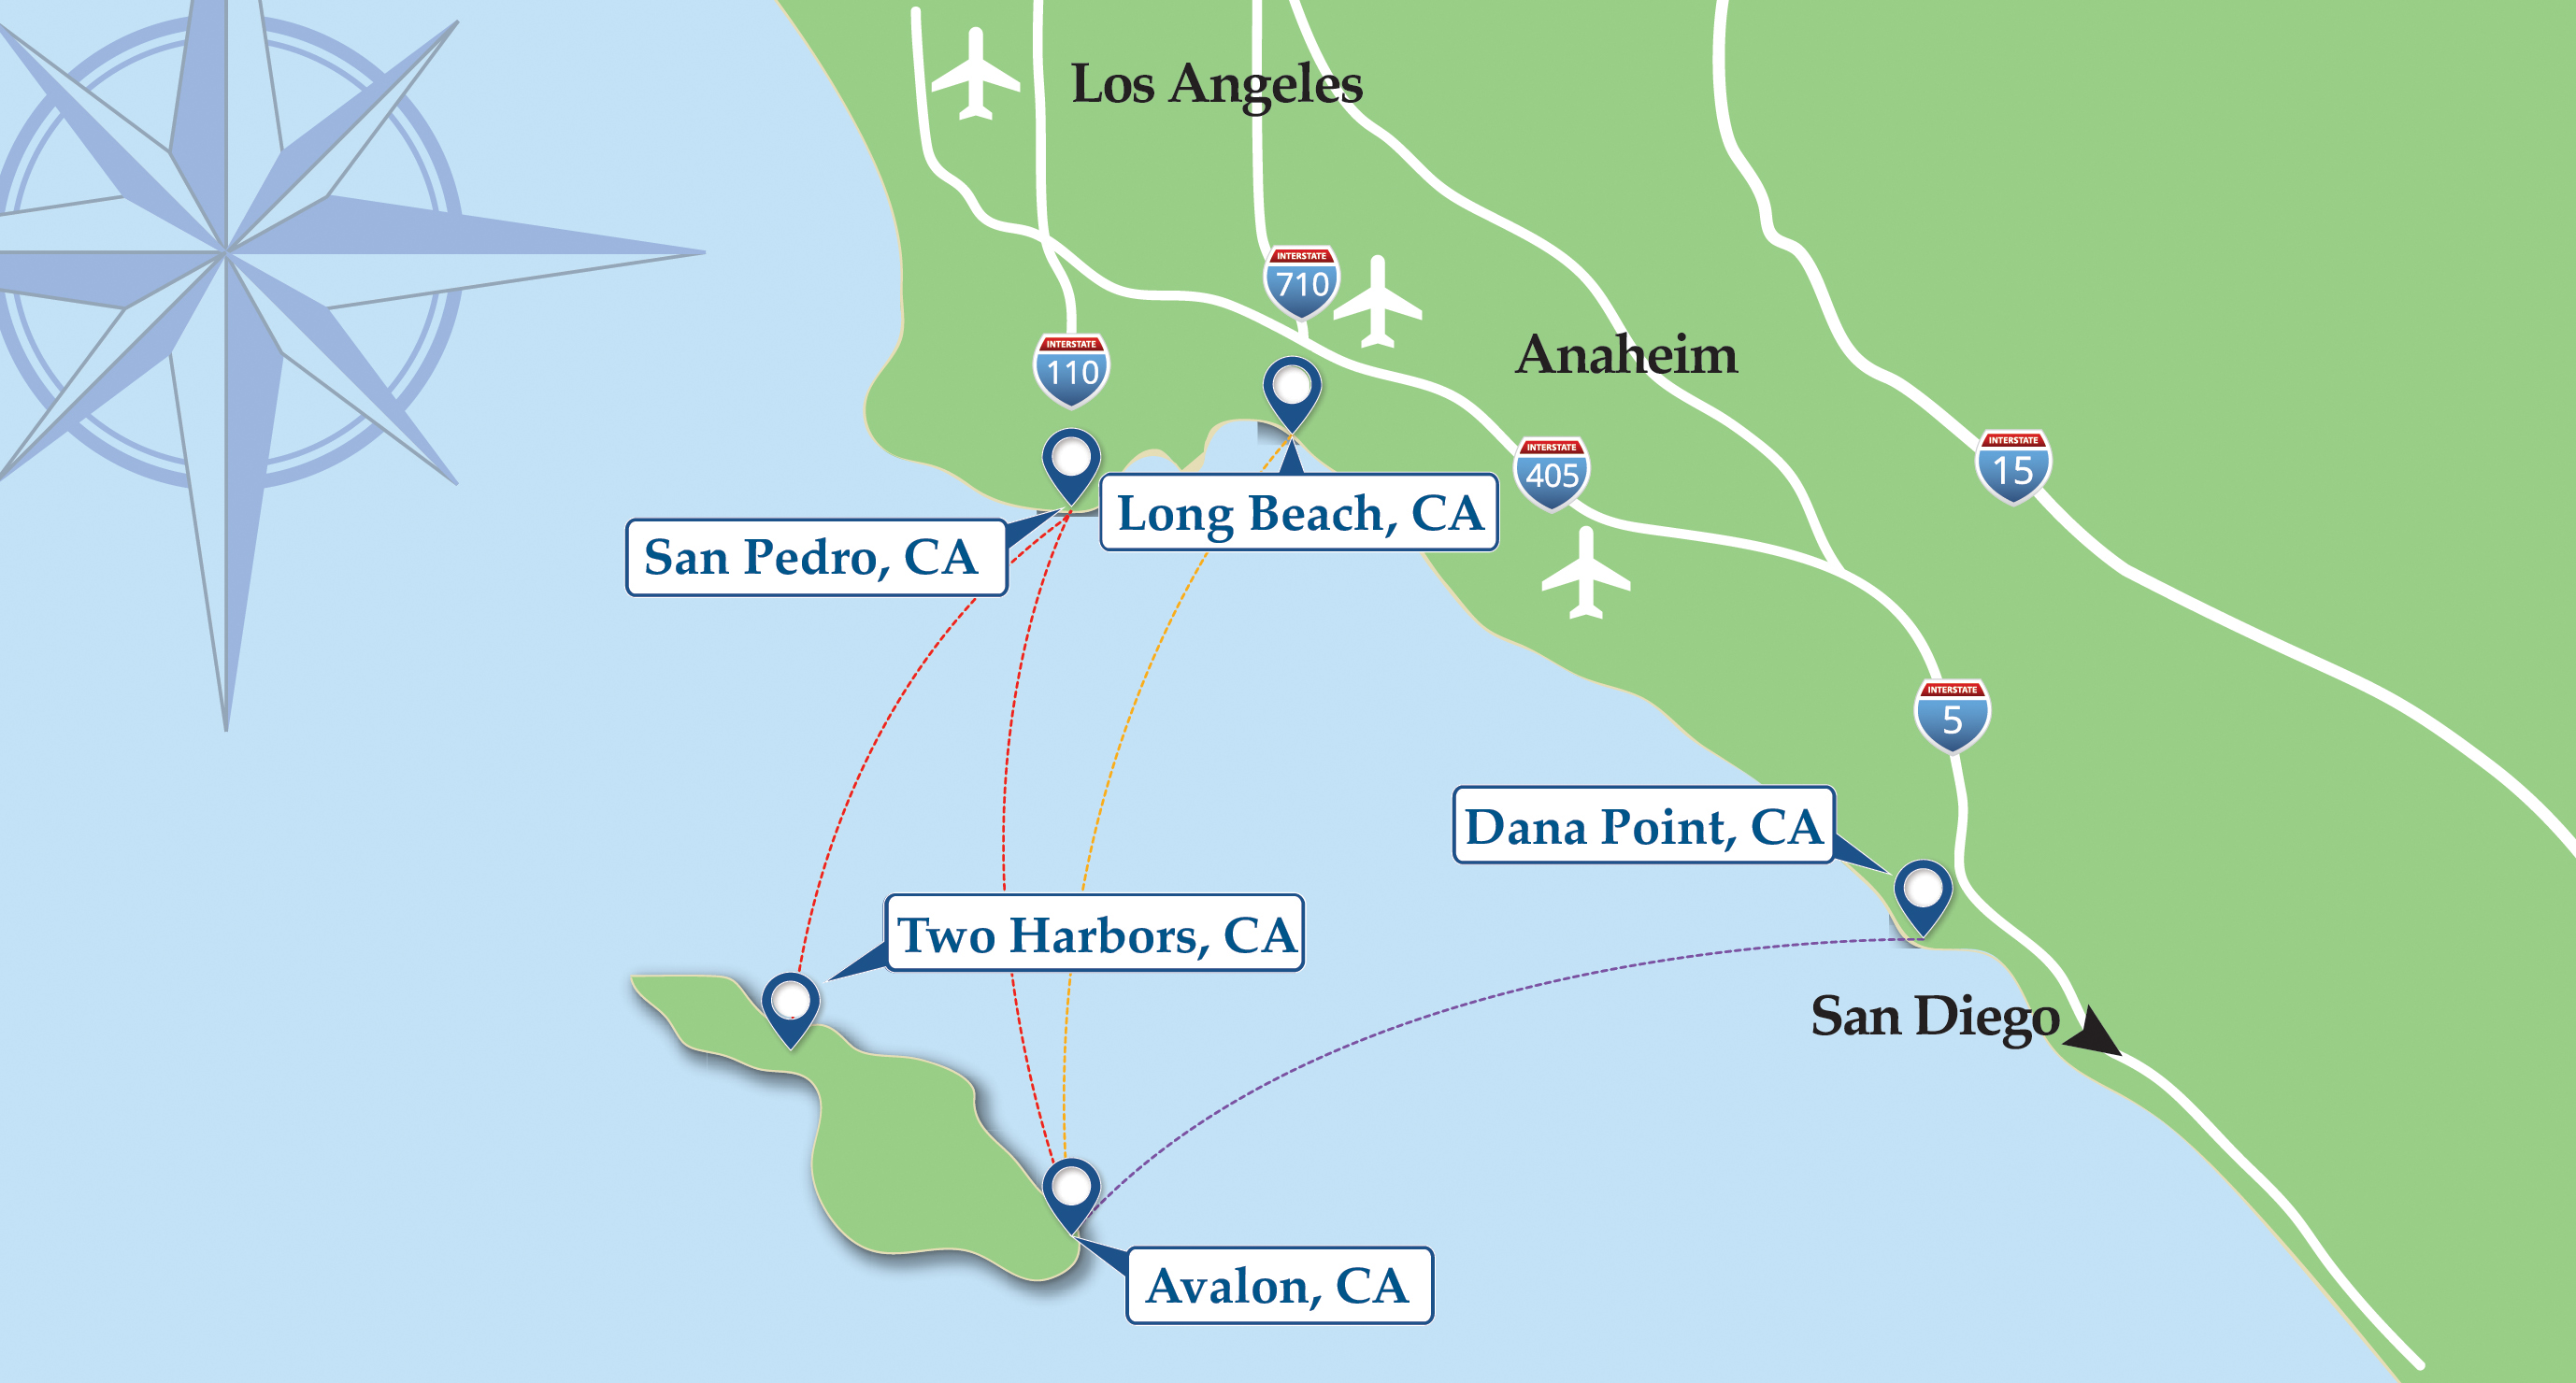 Map of Catalina Express ferry routes including mainland and Catalina